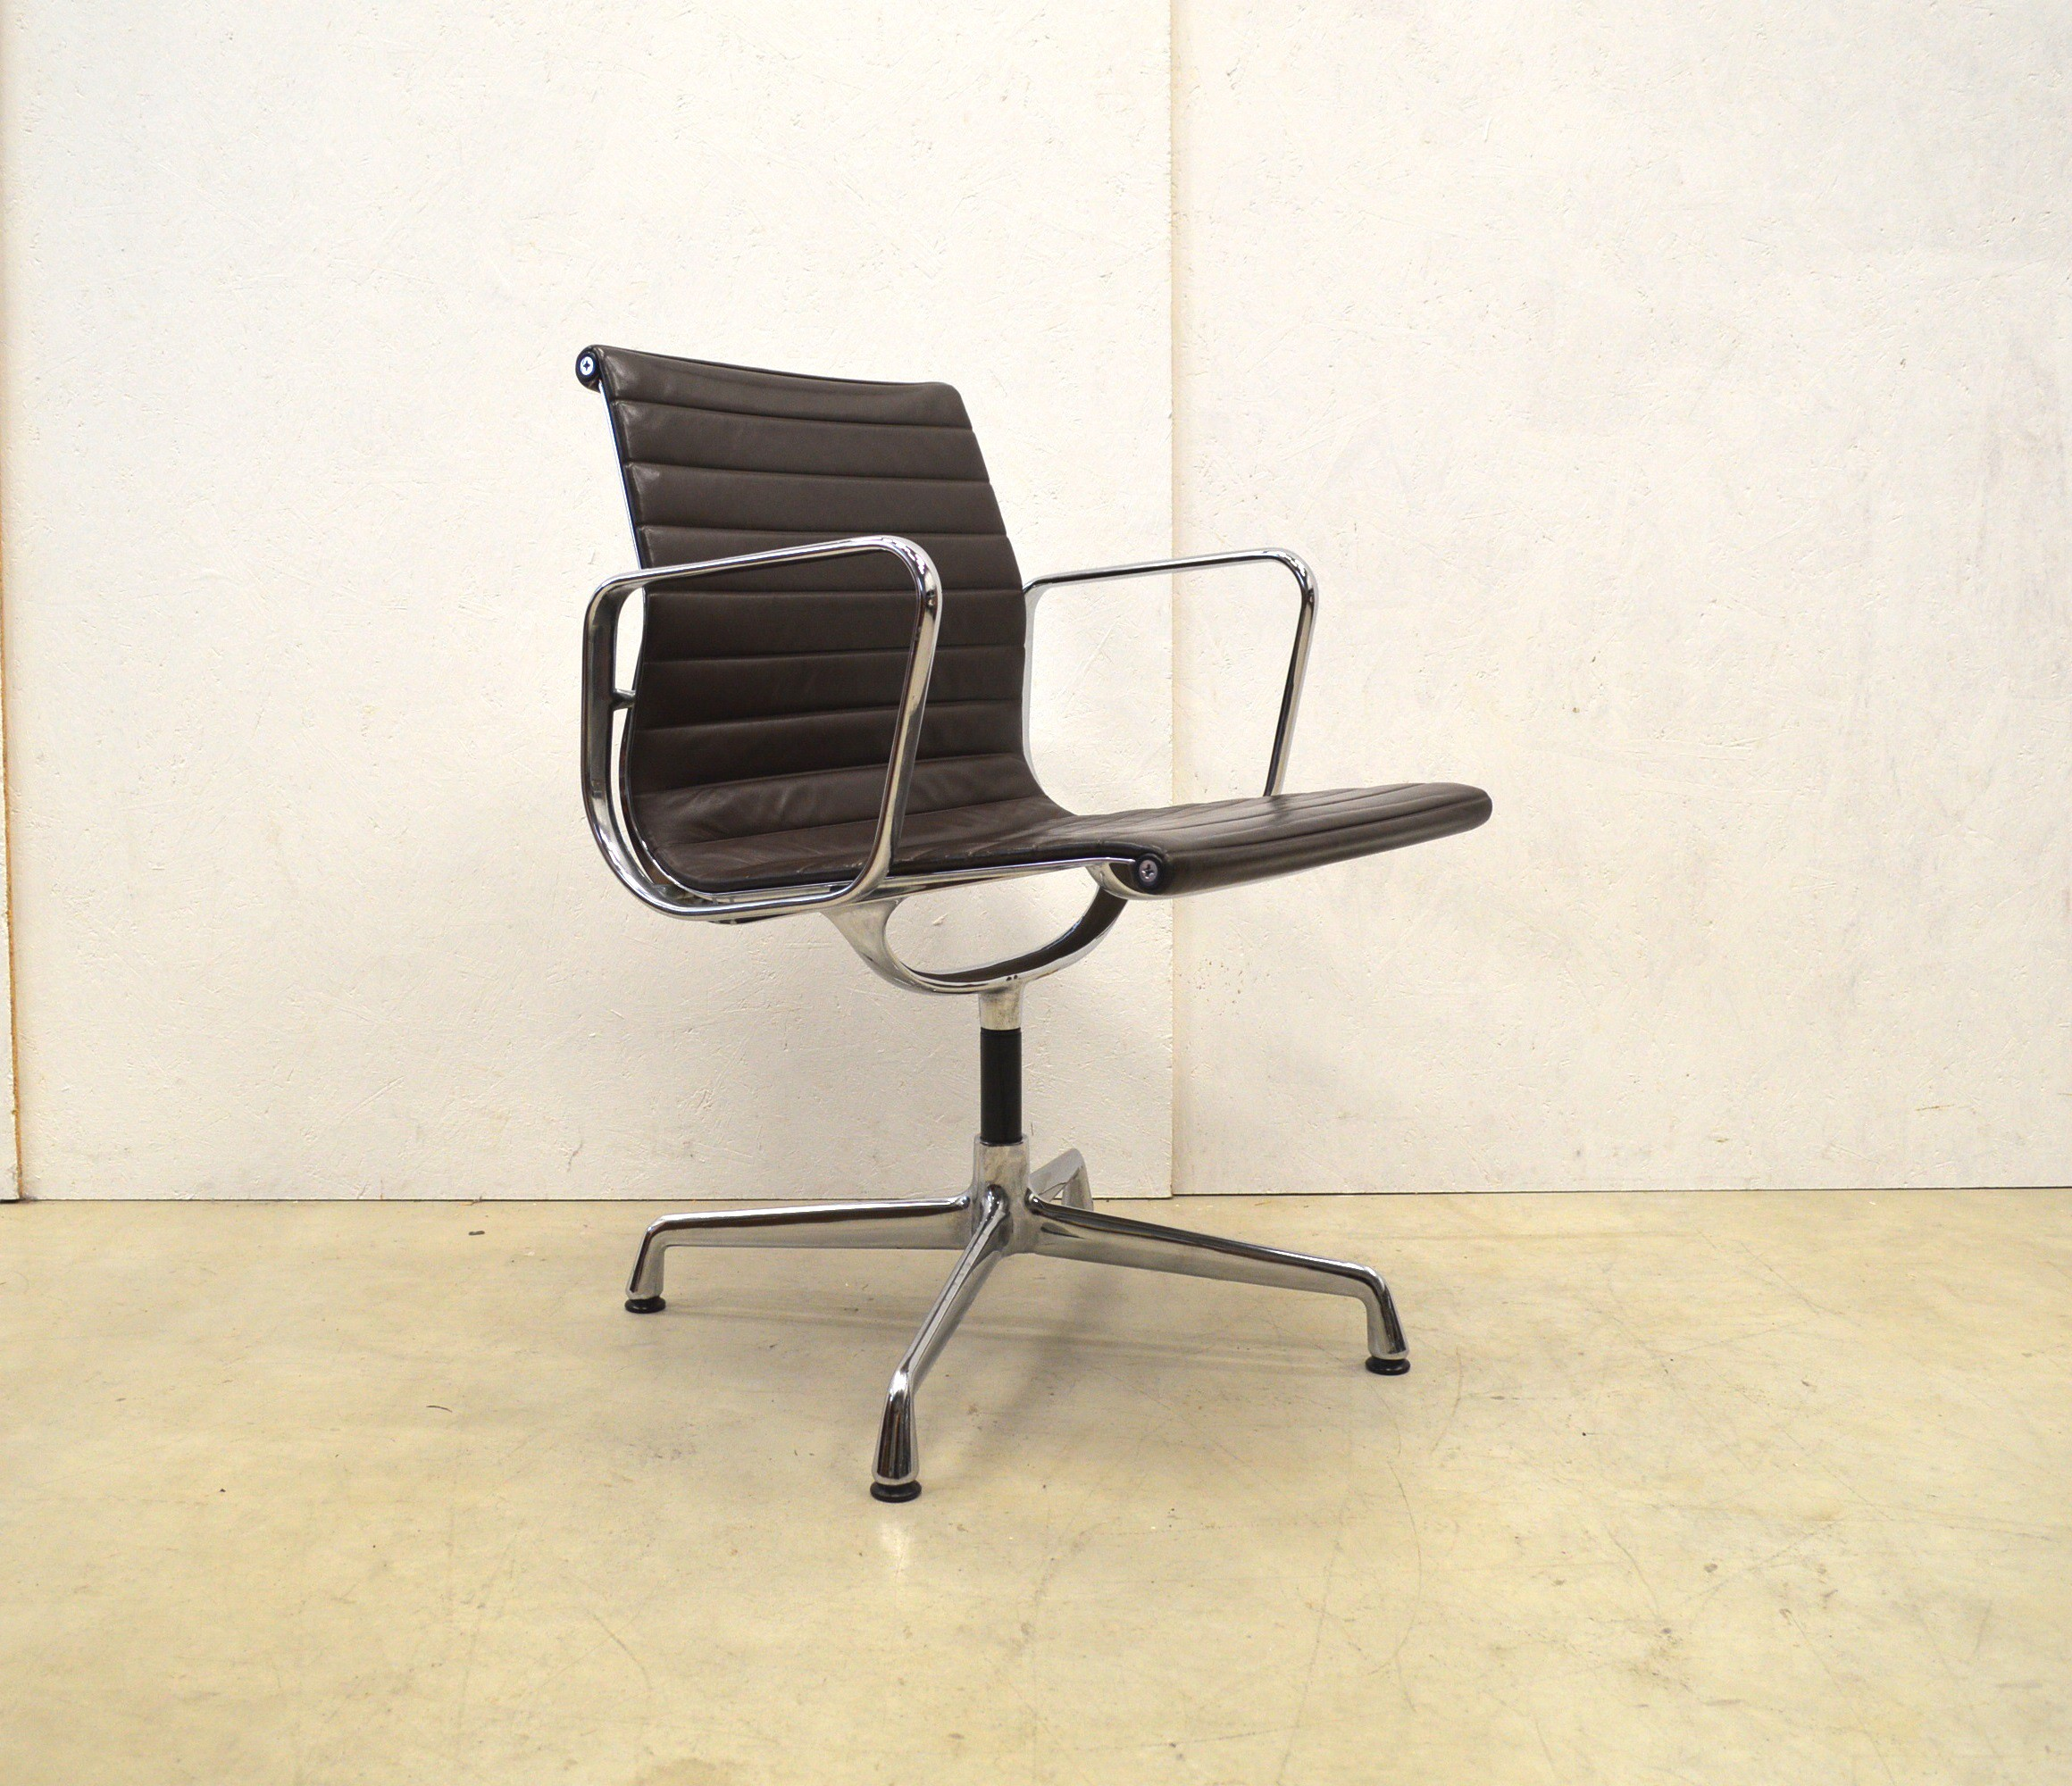 vitra ea108 desk chair in brown leather charles ray eames 1990s design market. Black Bedroom Furniture Sets. Home Design Ideas